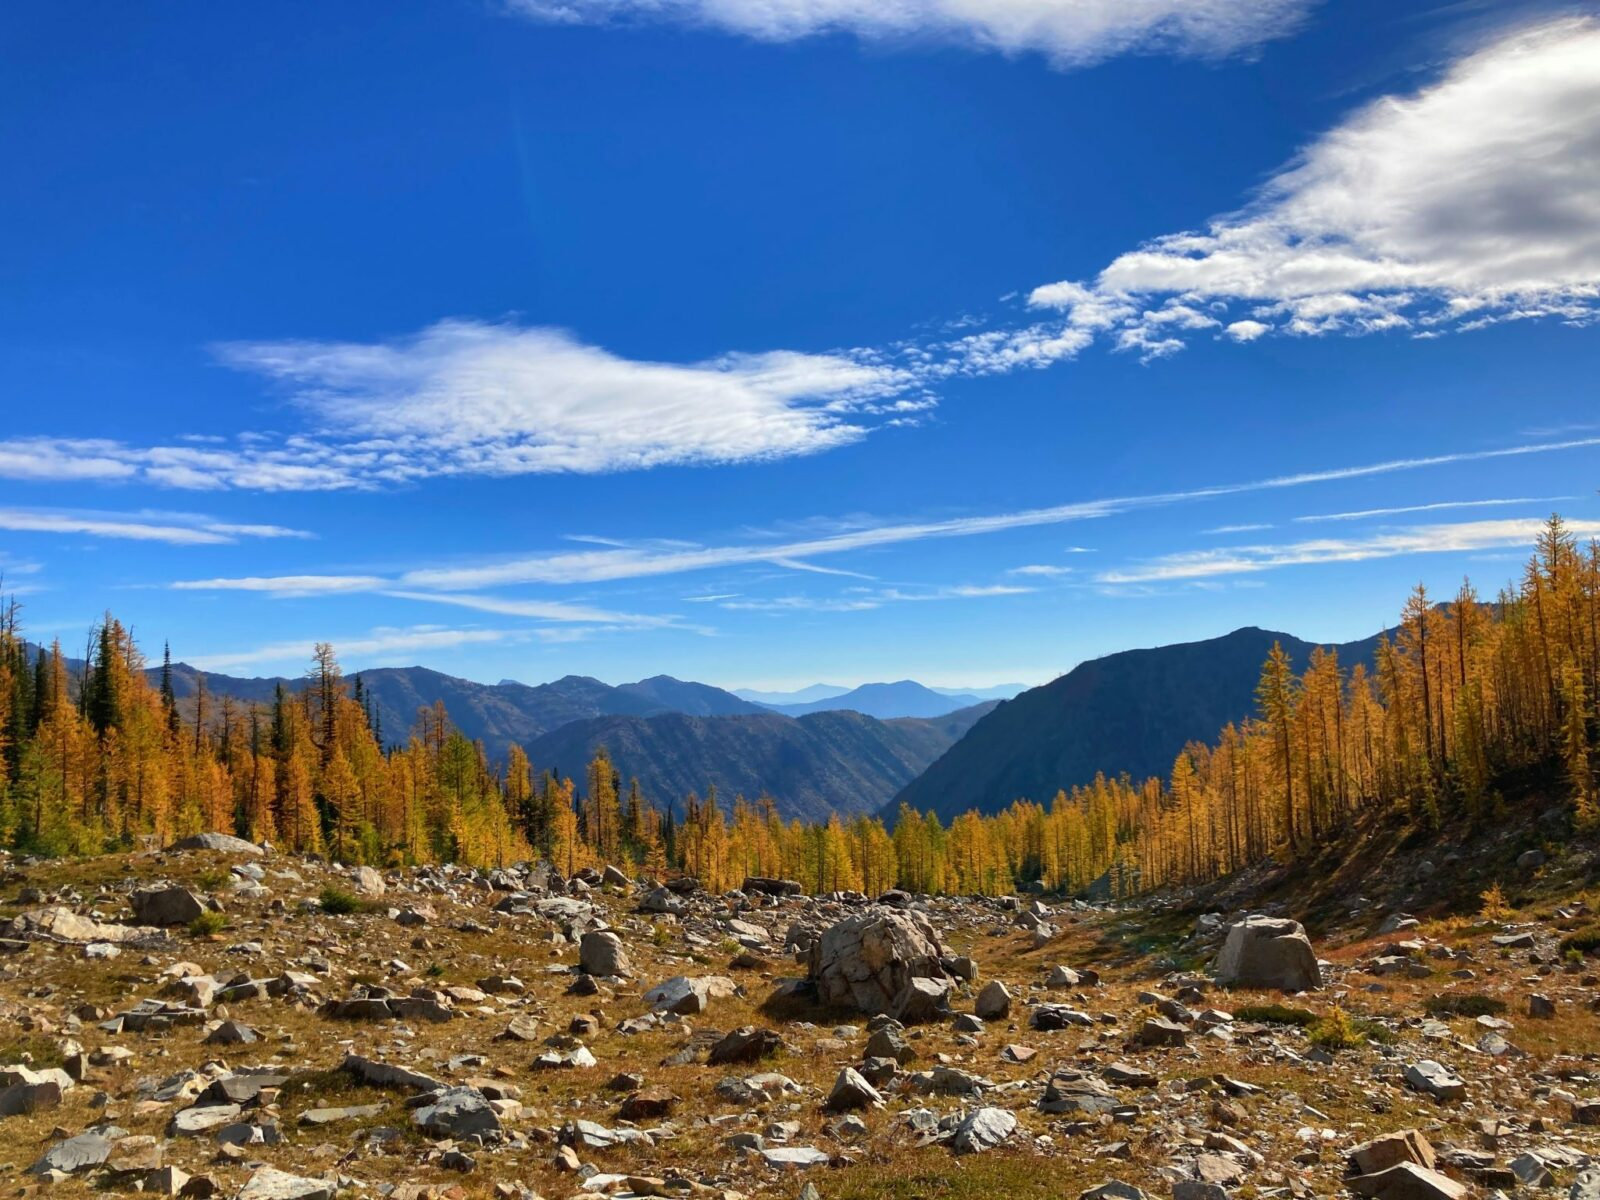 Golden larch trees with distant mountains and blue skies with some clouds in the background along the Pacific Crest trail, one of the best larch hikes in washington